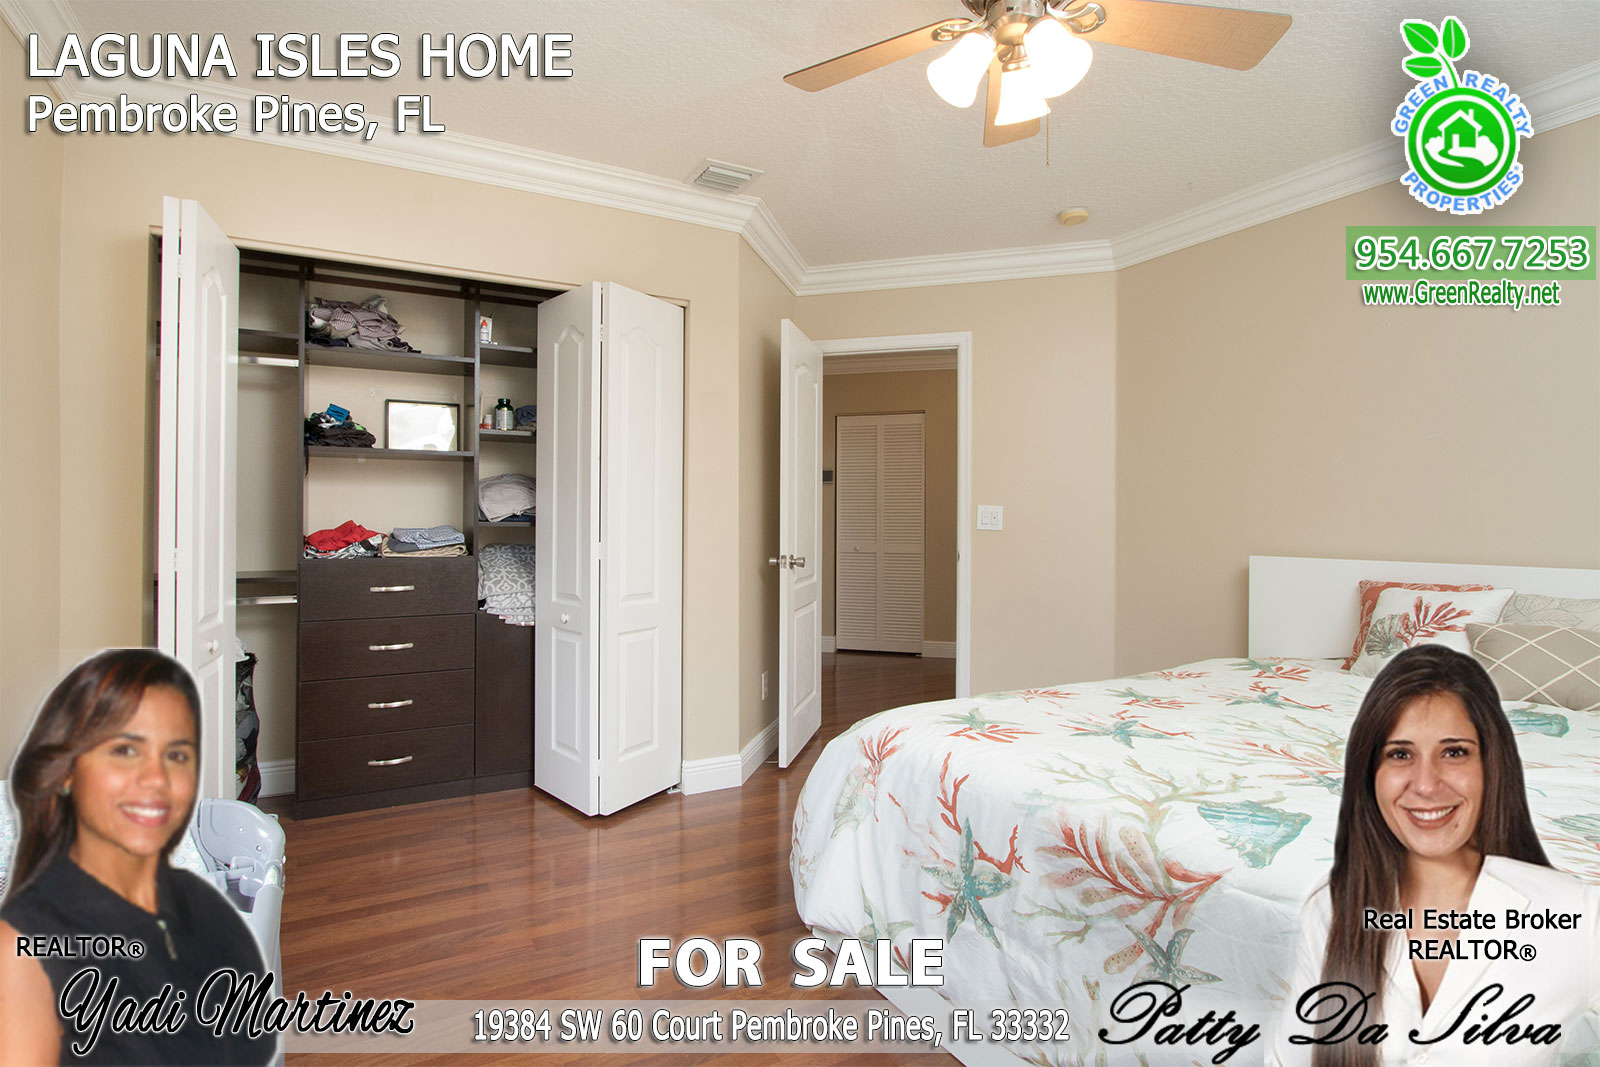 Pembroke-pines-laguna-isles-home-for-sale-by-green-realty-properties-19